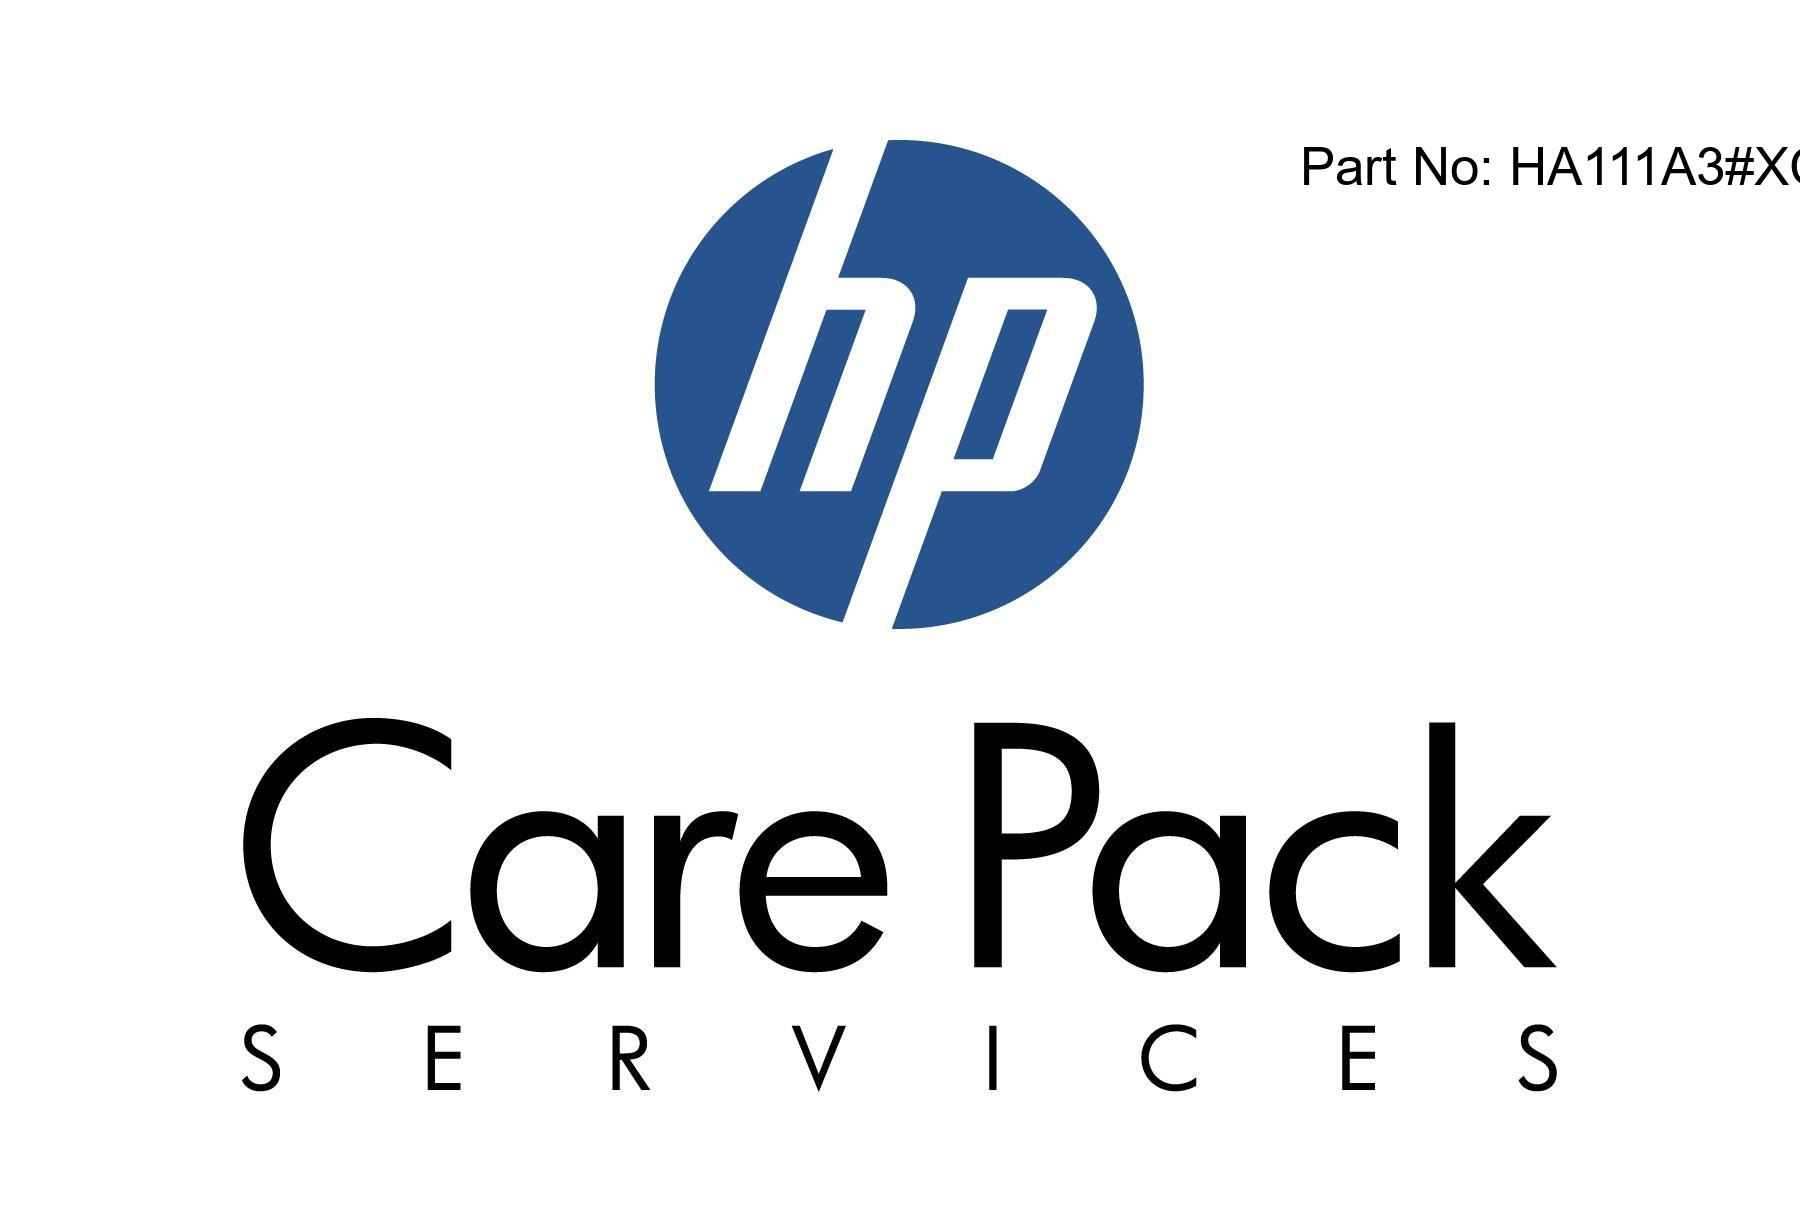 Proactive 24 - Technical support - for HPE 3PAR 8450 Virtual Copy - phone consulting - 3 years - 24x7 - response time: 2 h (pack of 8)